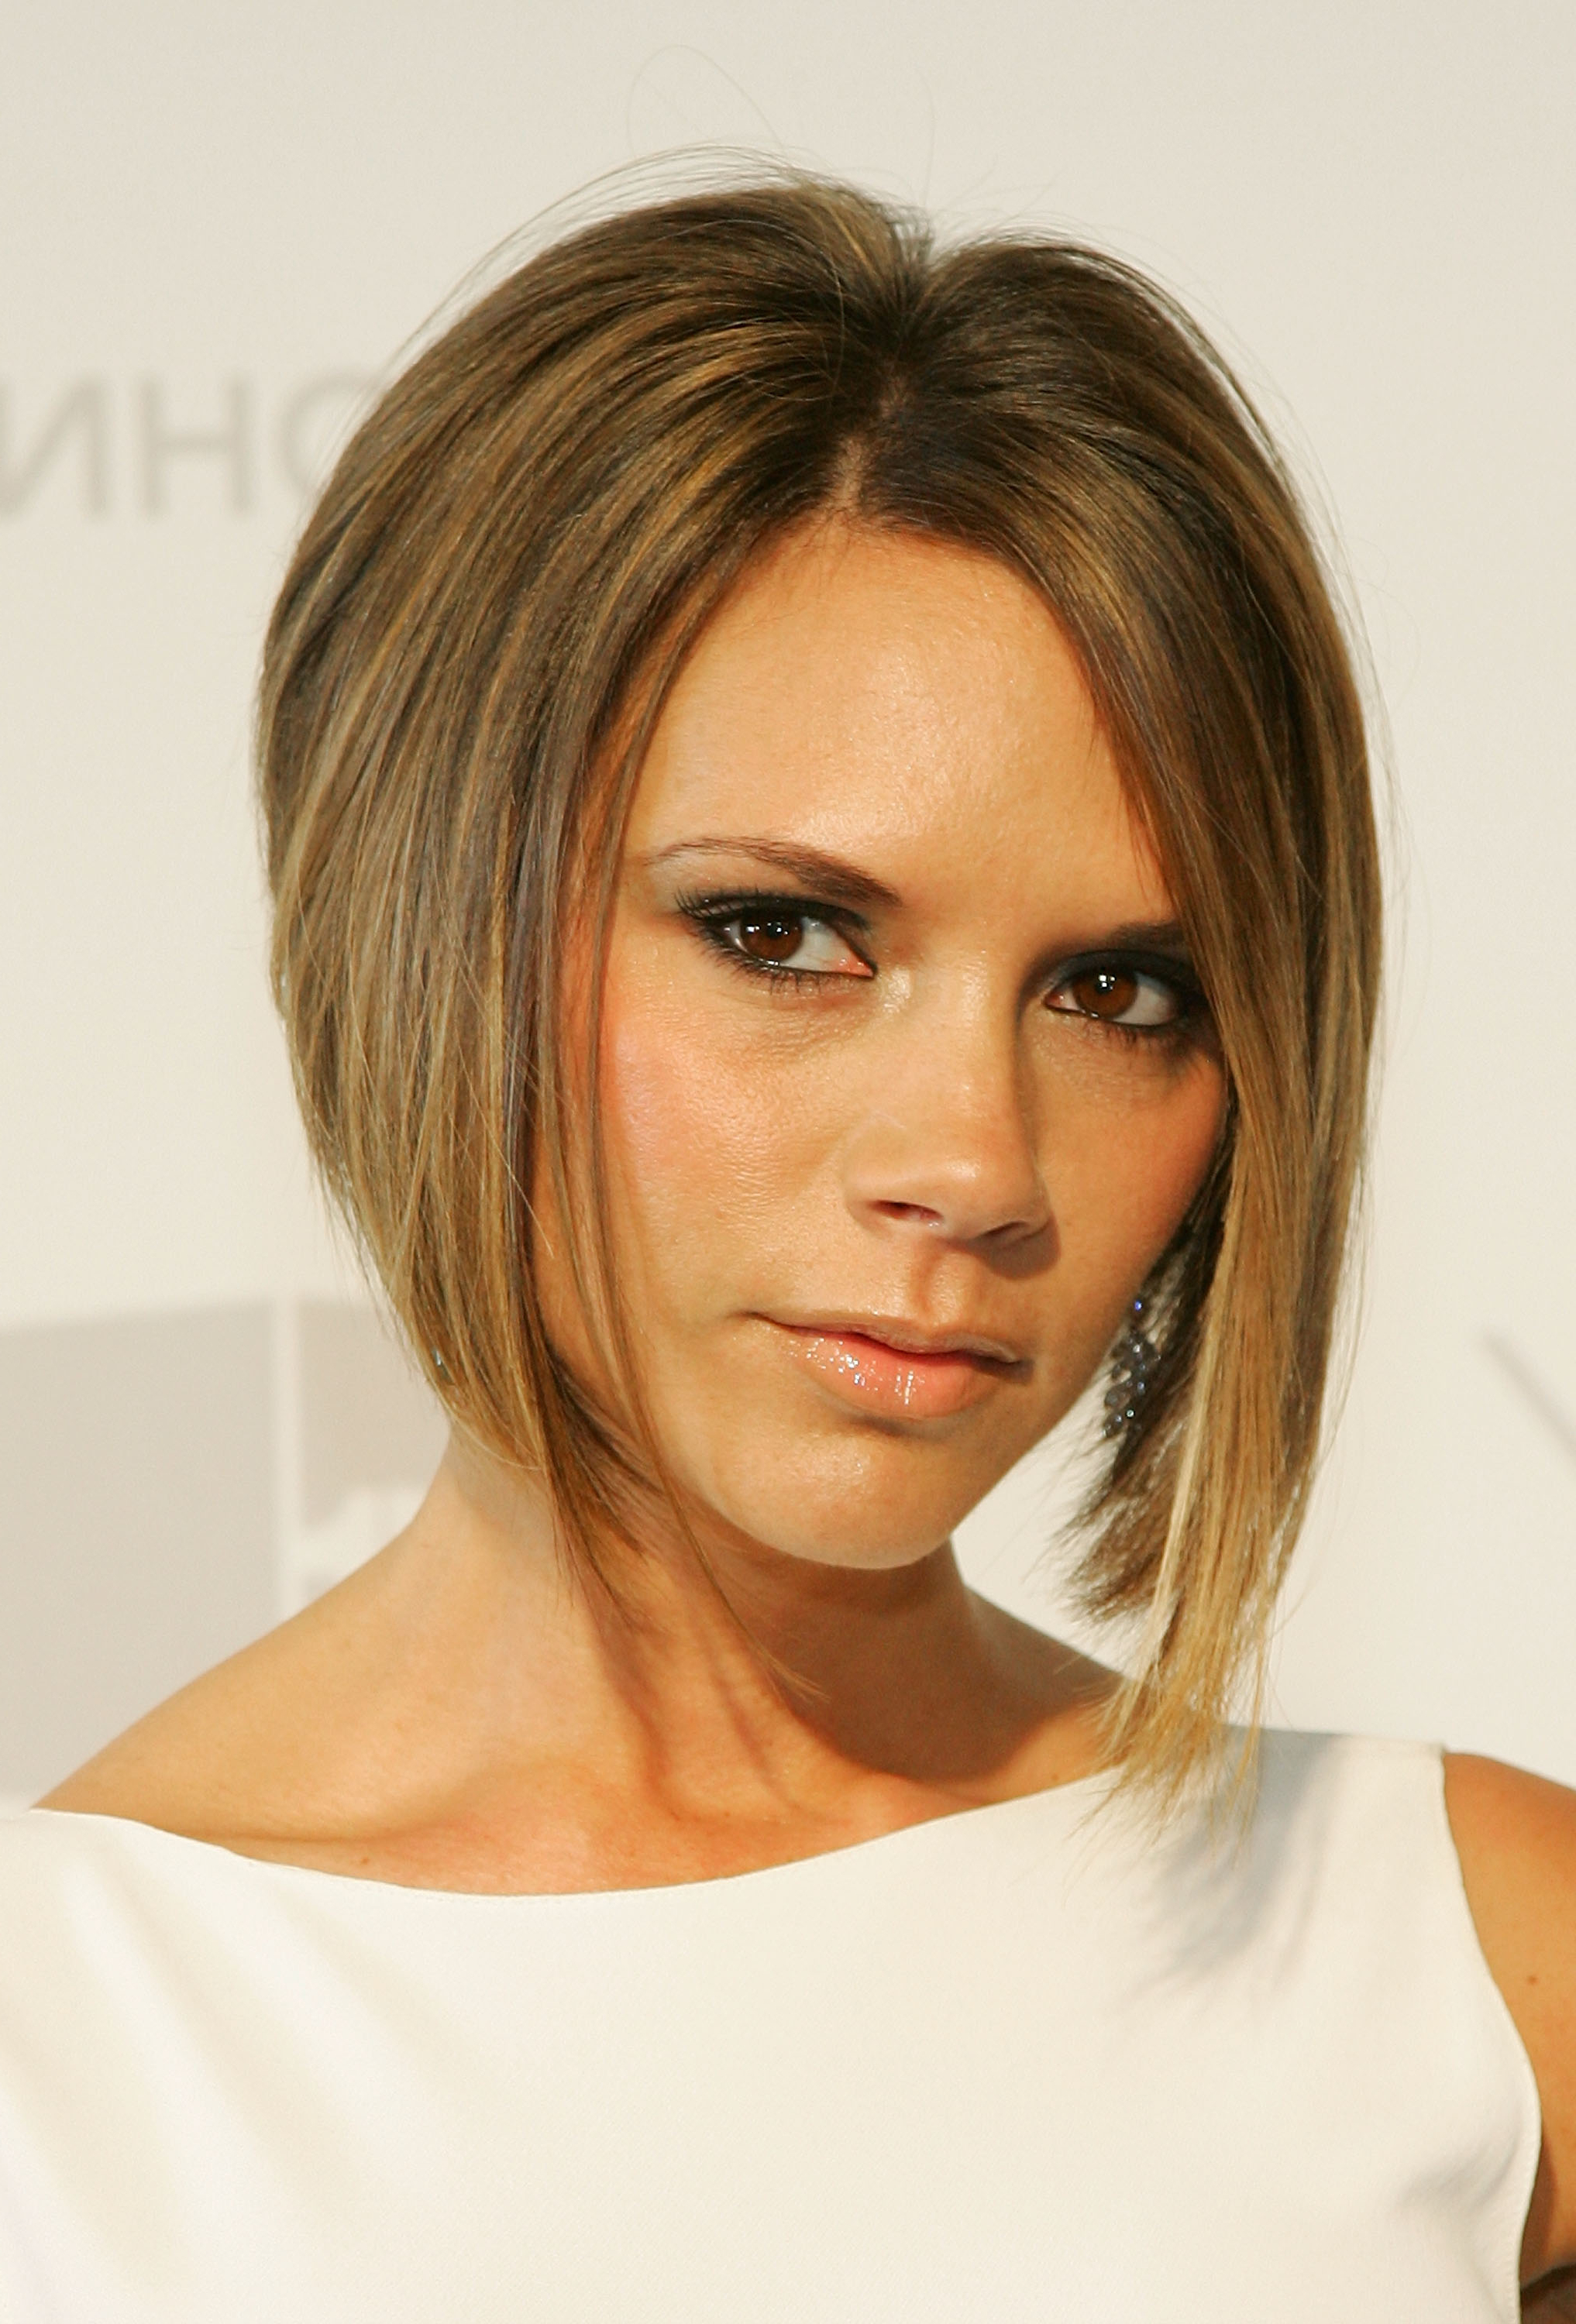 Hair Cuts : Wedding Guest Hairstyles For Long Thin Hair Indian For Most Current Medium Hairstyles For Fine Thin Straight Hair (View 6 of 20)